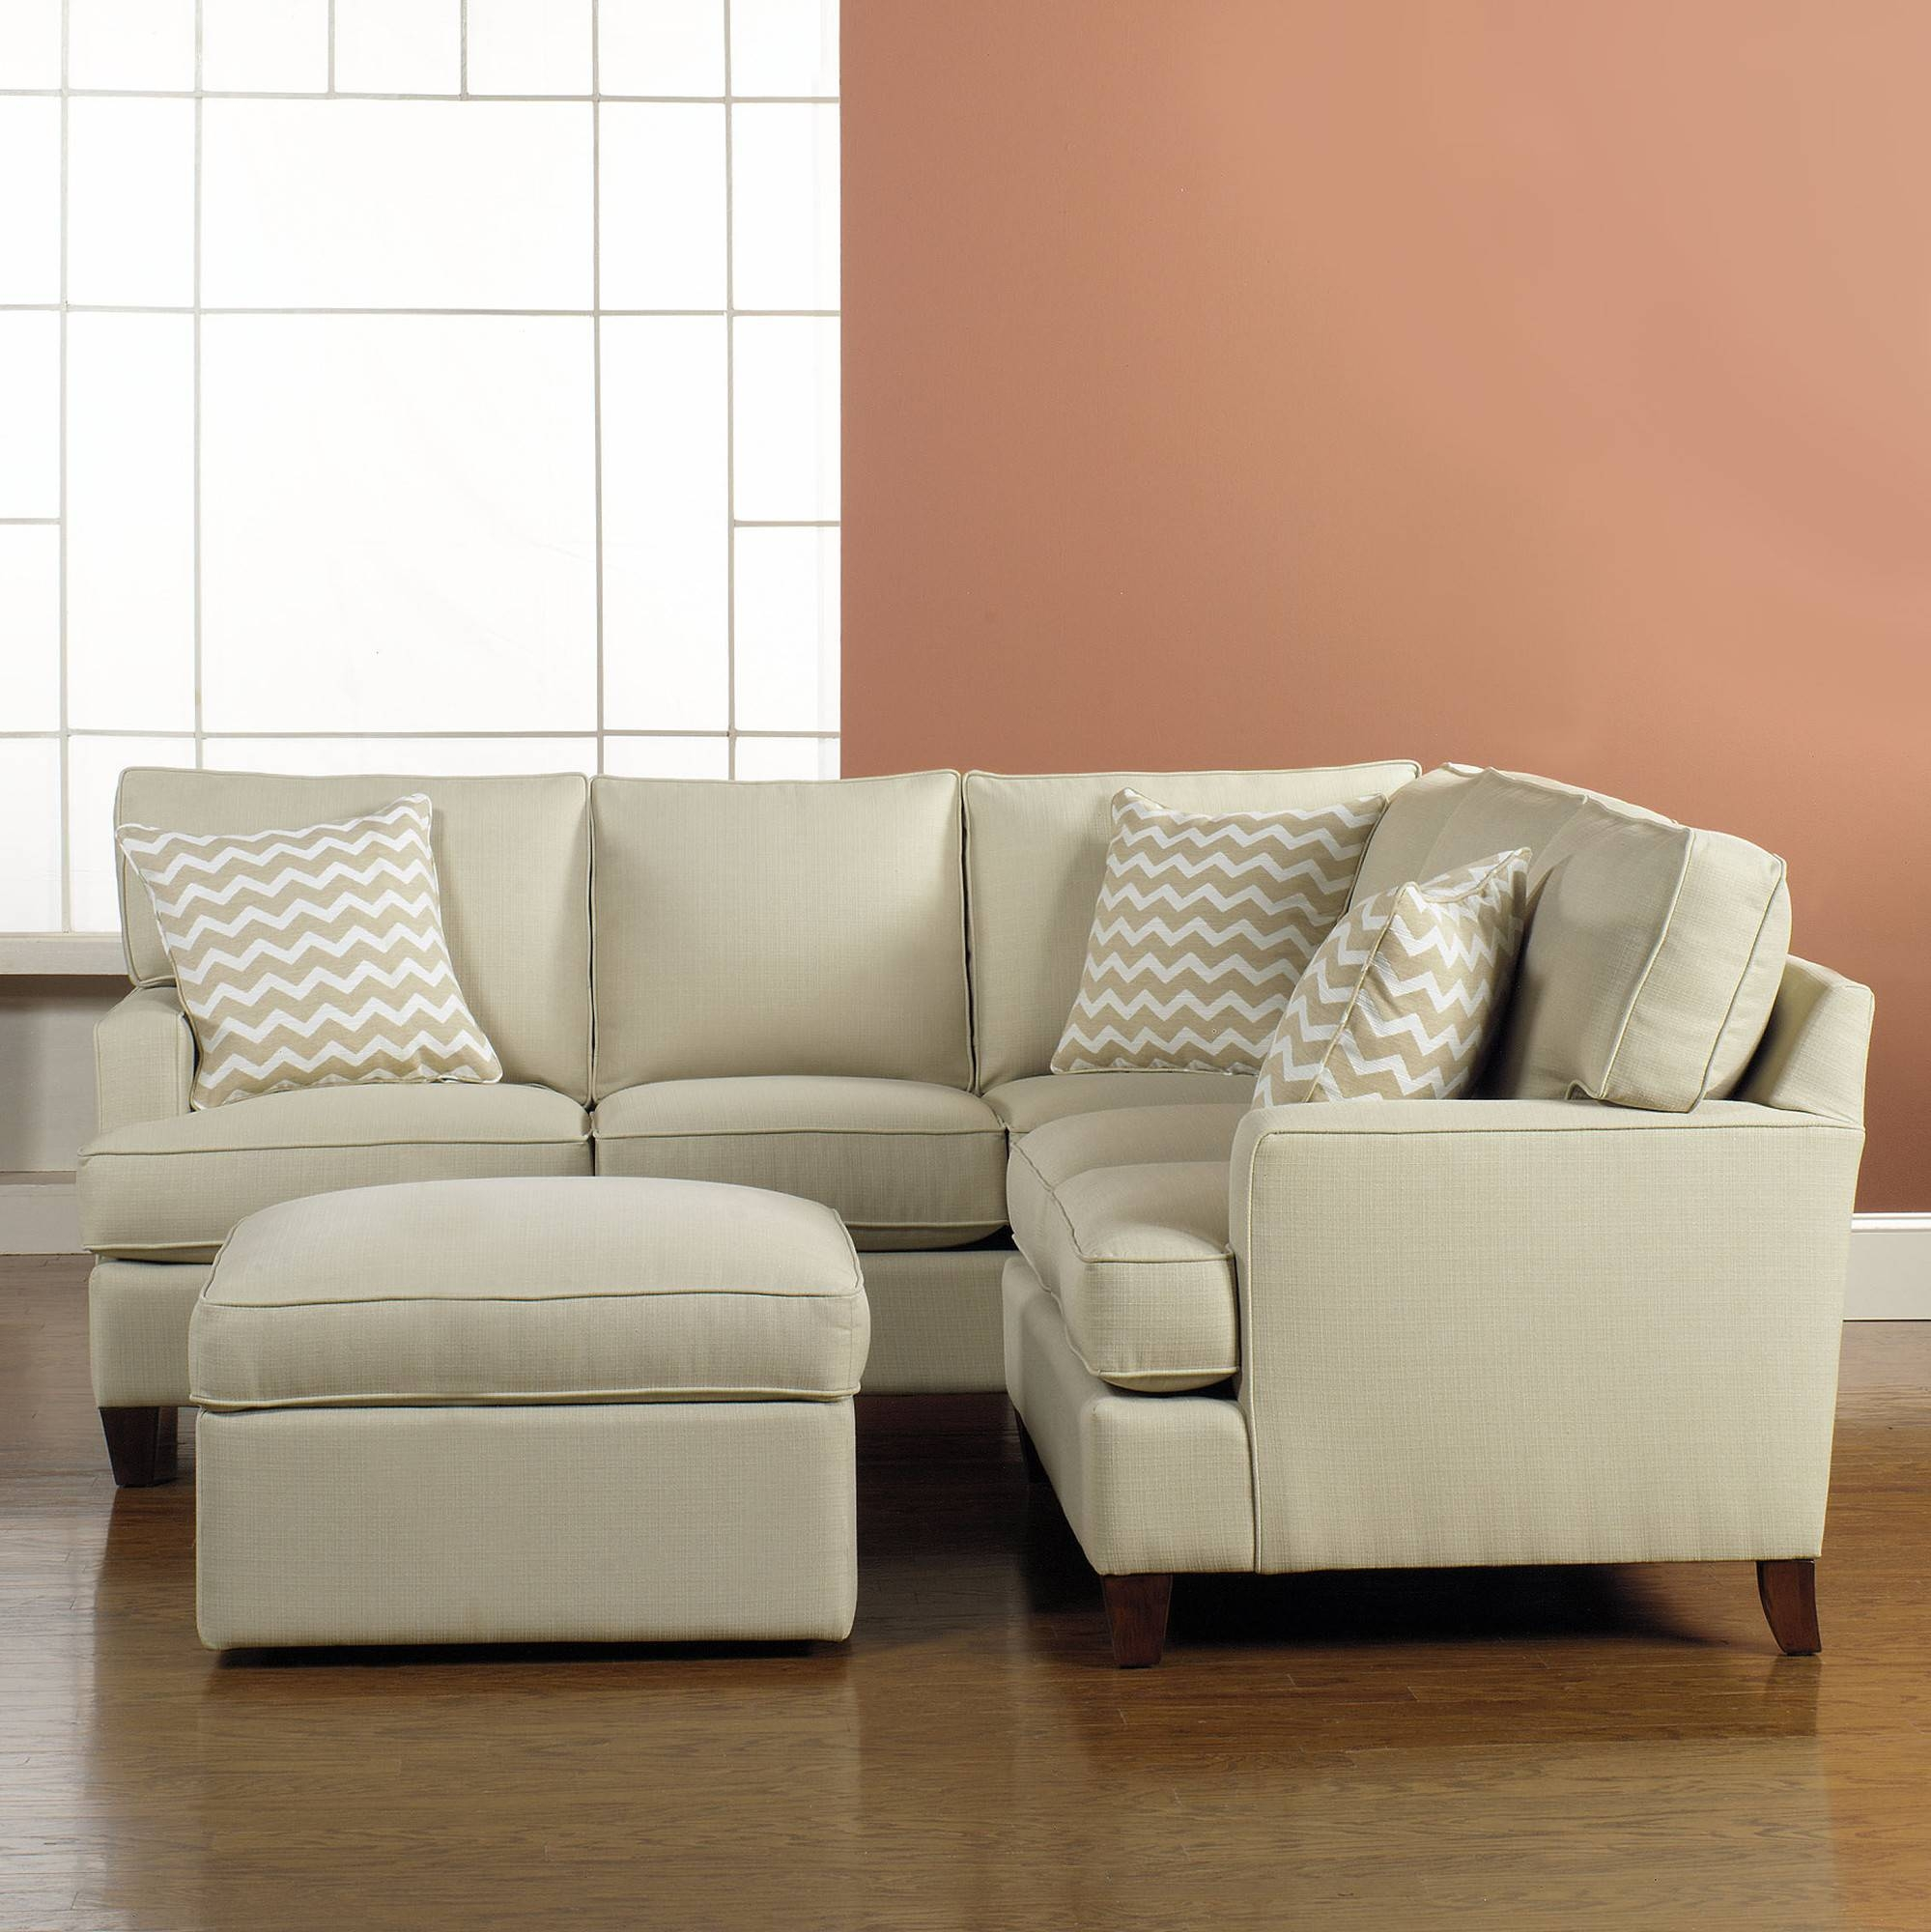 Small Space Sofas Top 10 Contemporary Sofas For Small Spaces with Small Sectional Sofas for Small Spaces (Image 22 of 25)